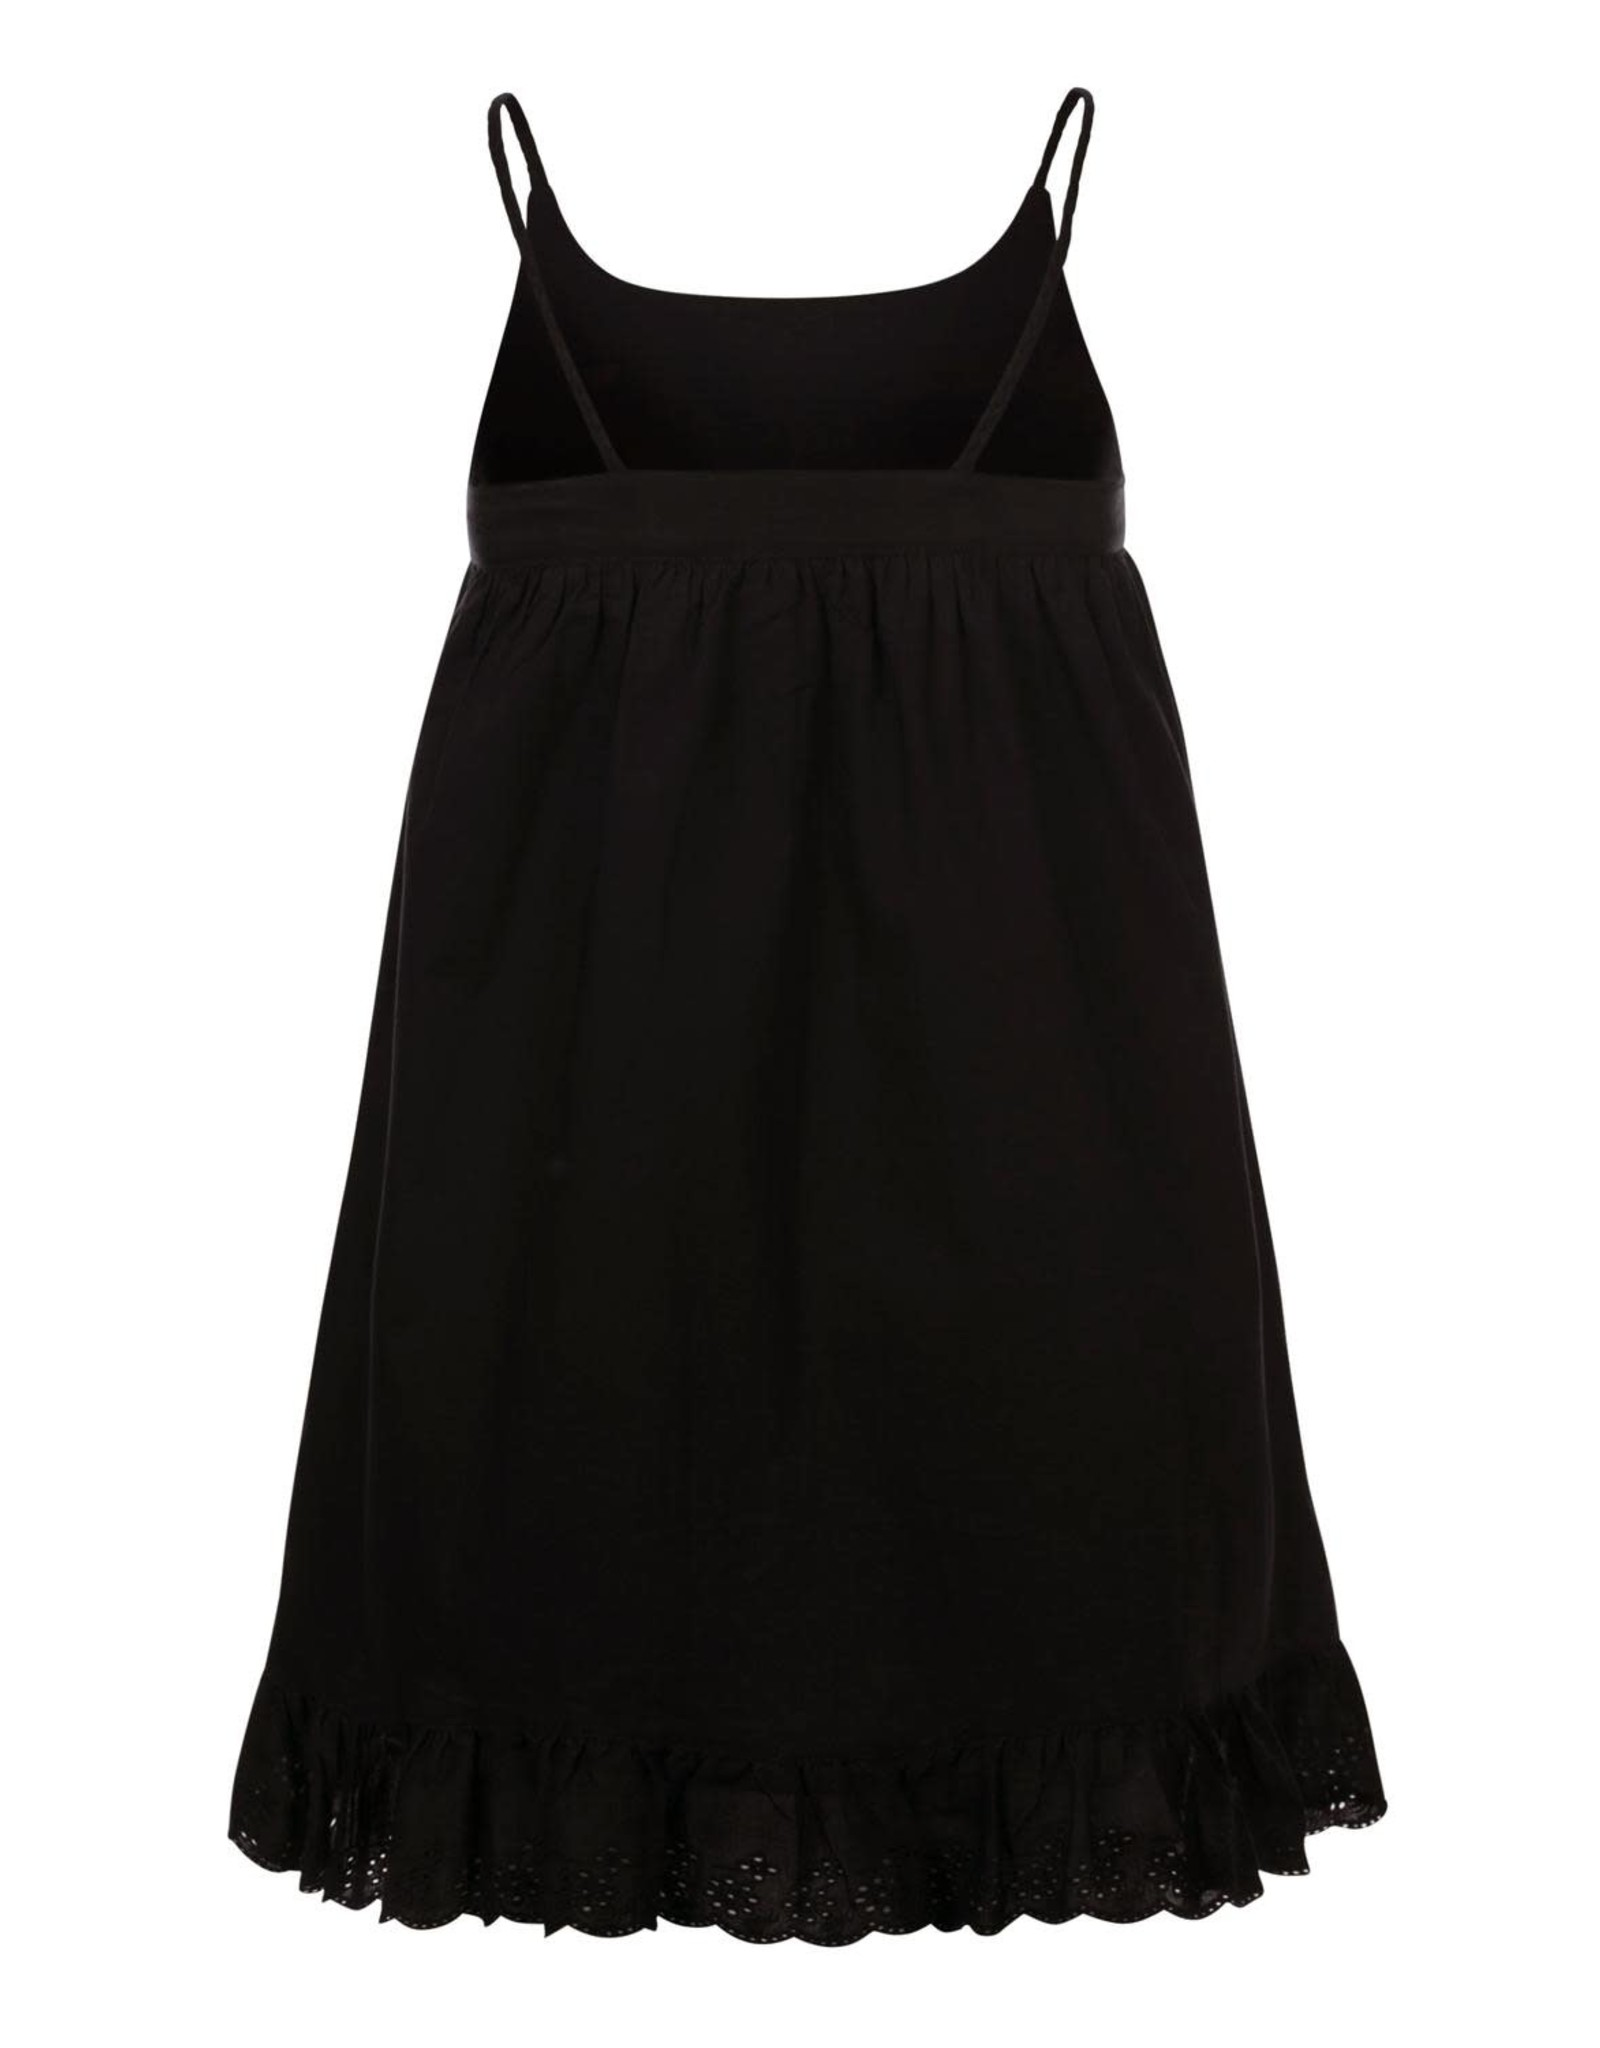 Looxs Little woven dress spaghe black